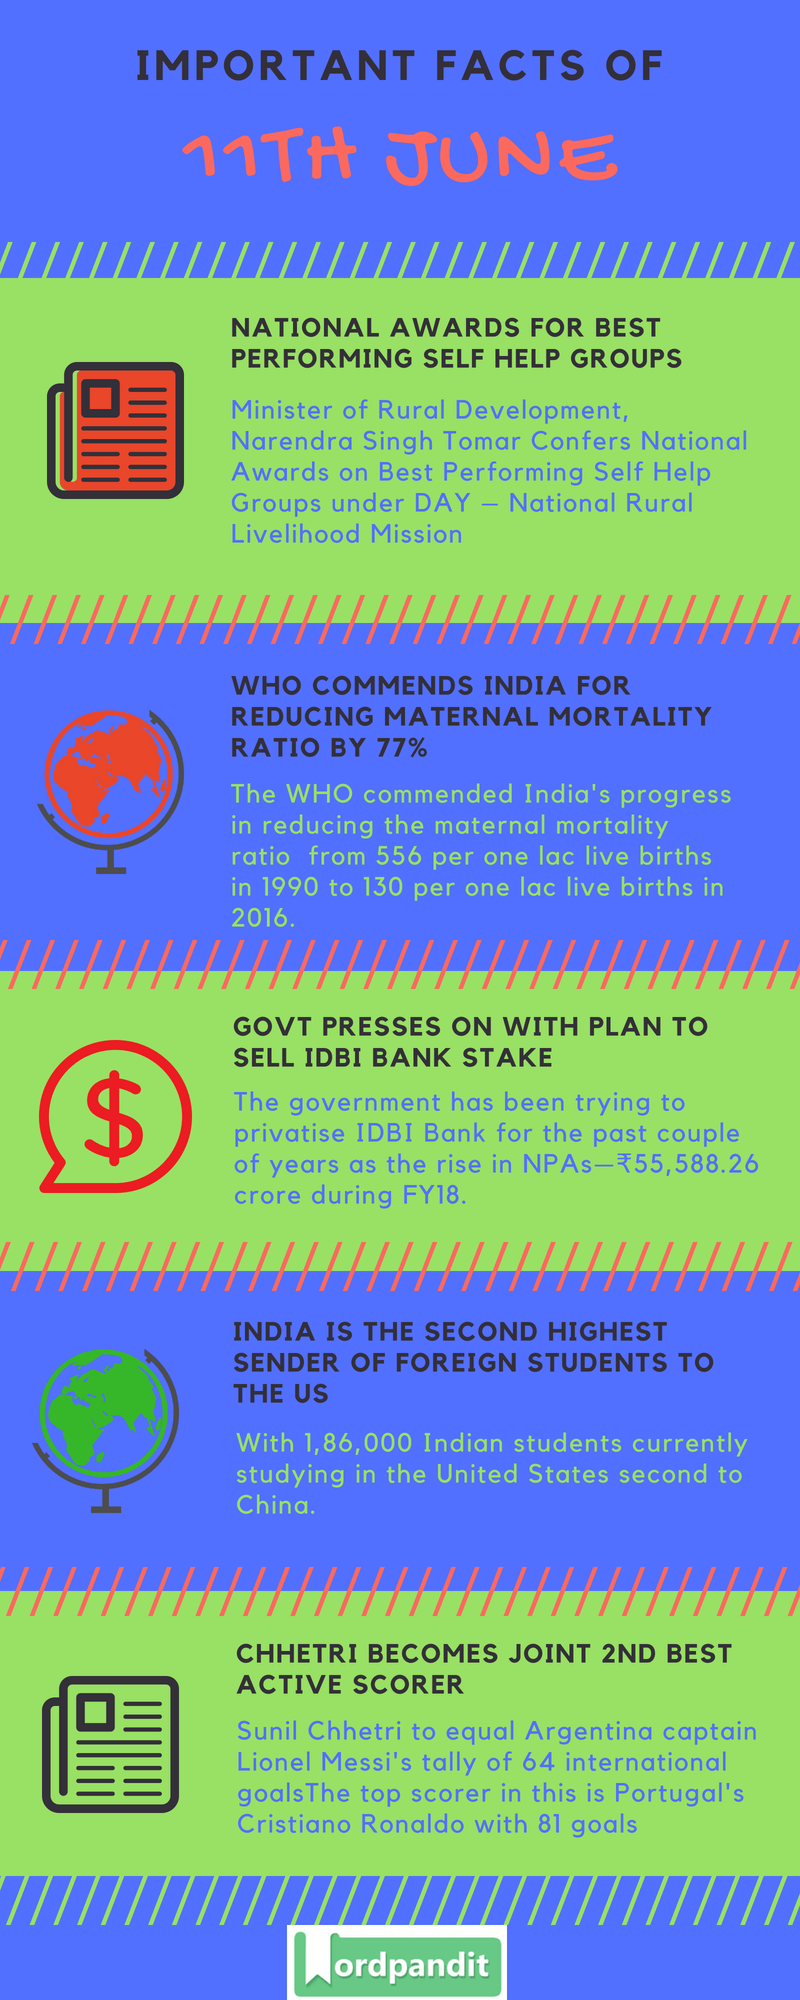 Daily Current Affairs 11 June 2018 Current Affairs Quiz June 11 2018 Current Affairs Infographic